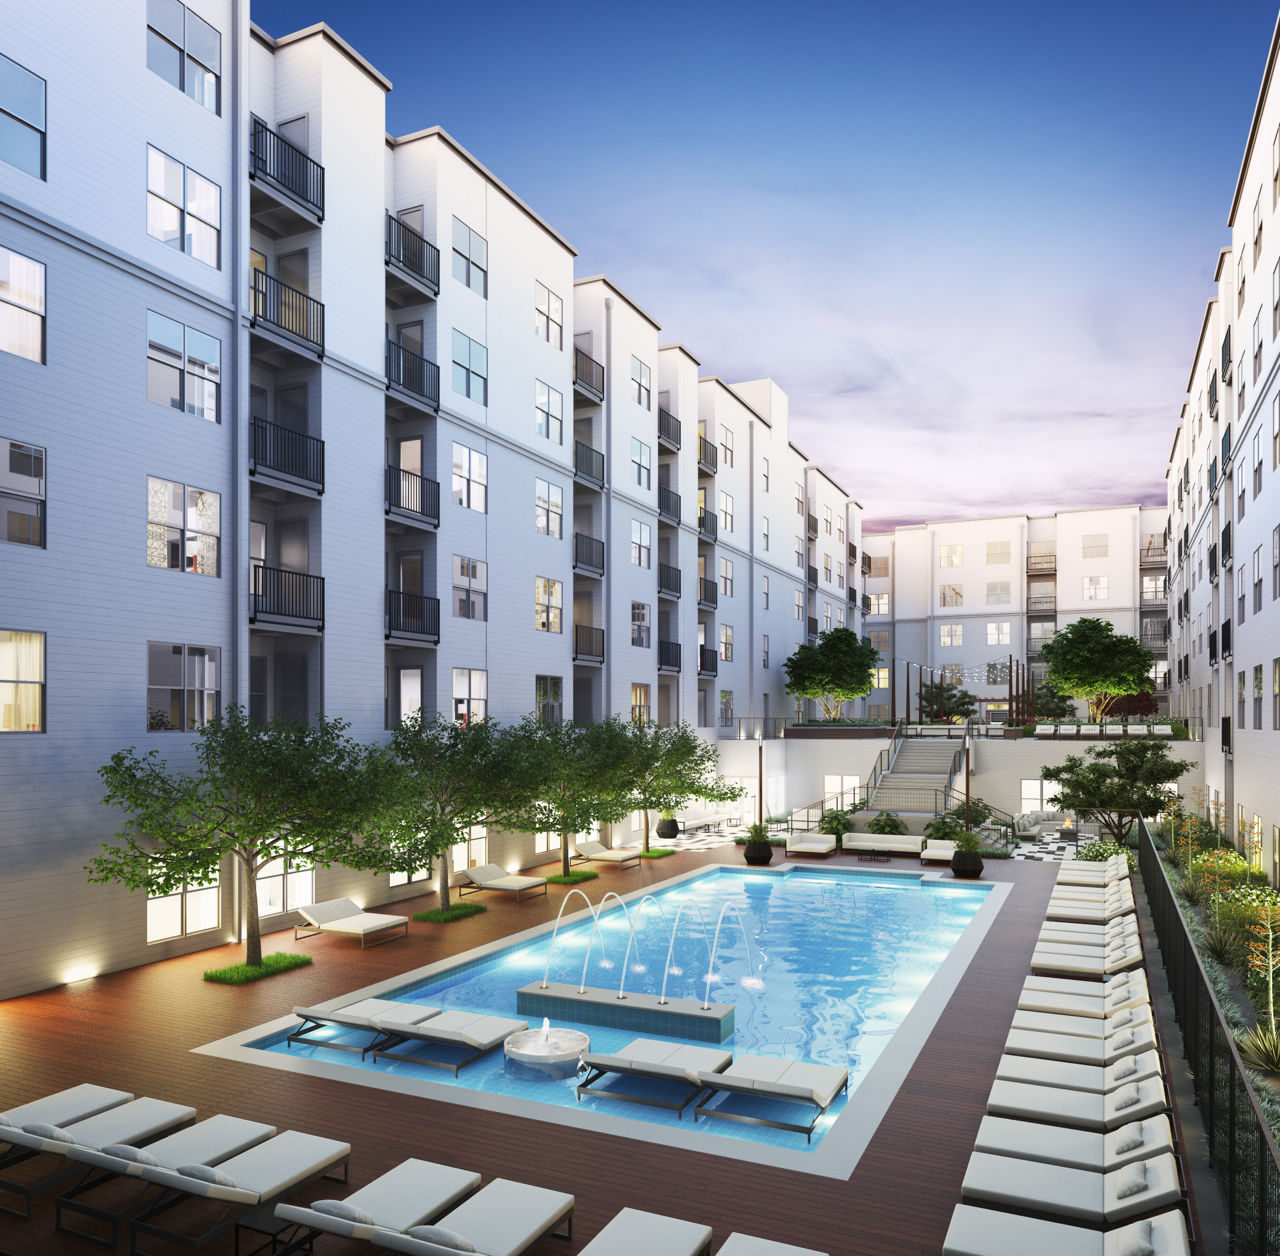 Apartment Community: National Harbor's First Apartment Community Now Available